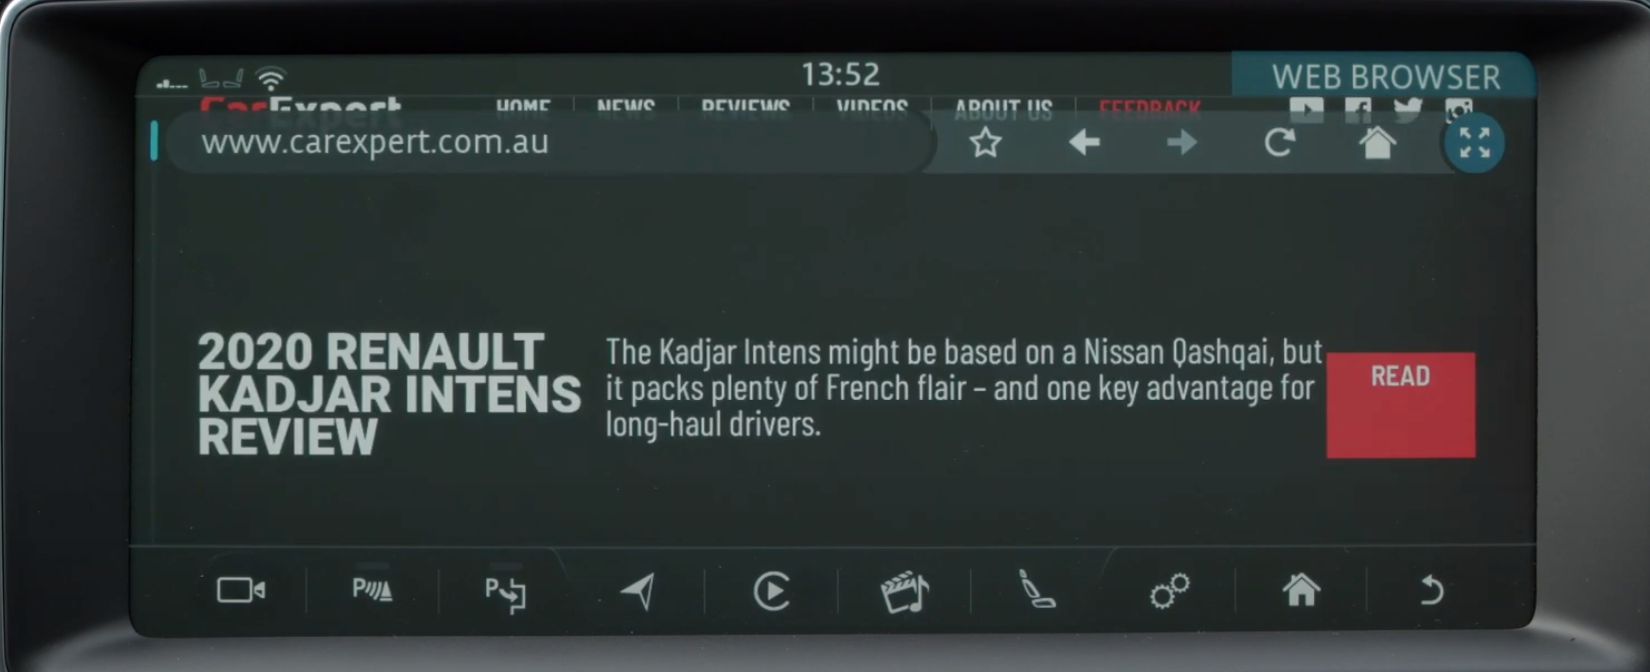 A website page displayed on the infotainment screen